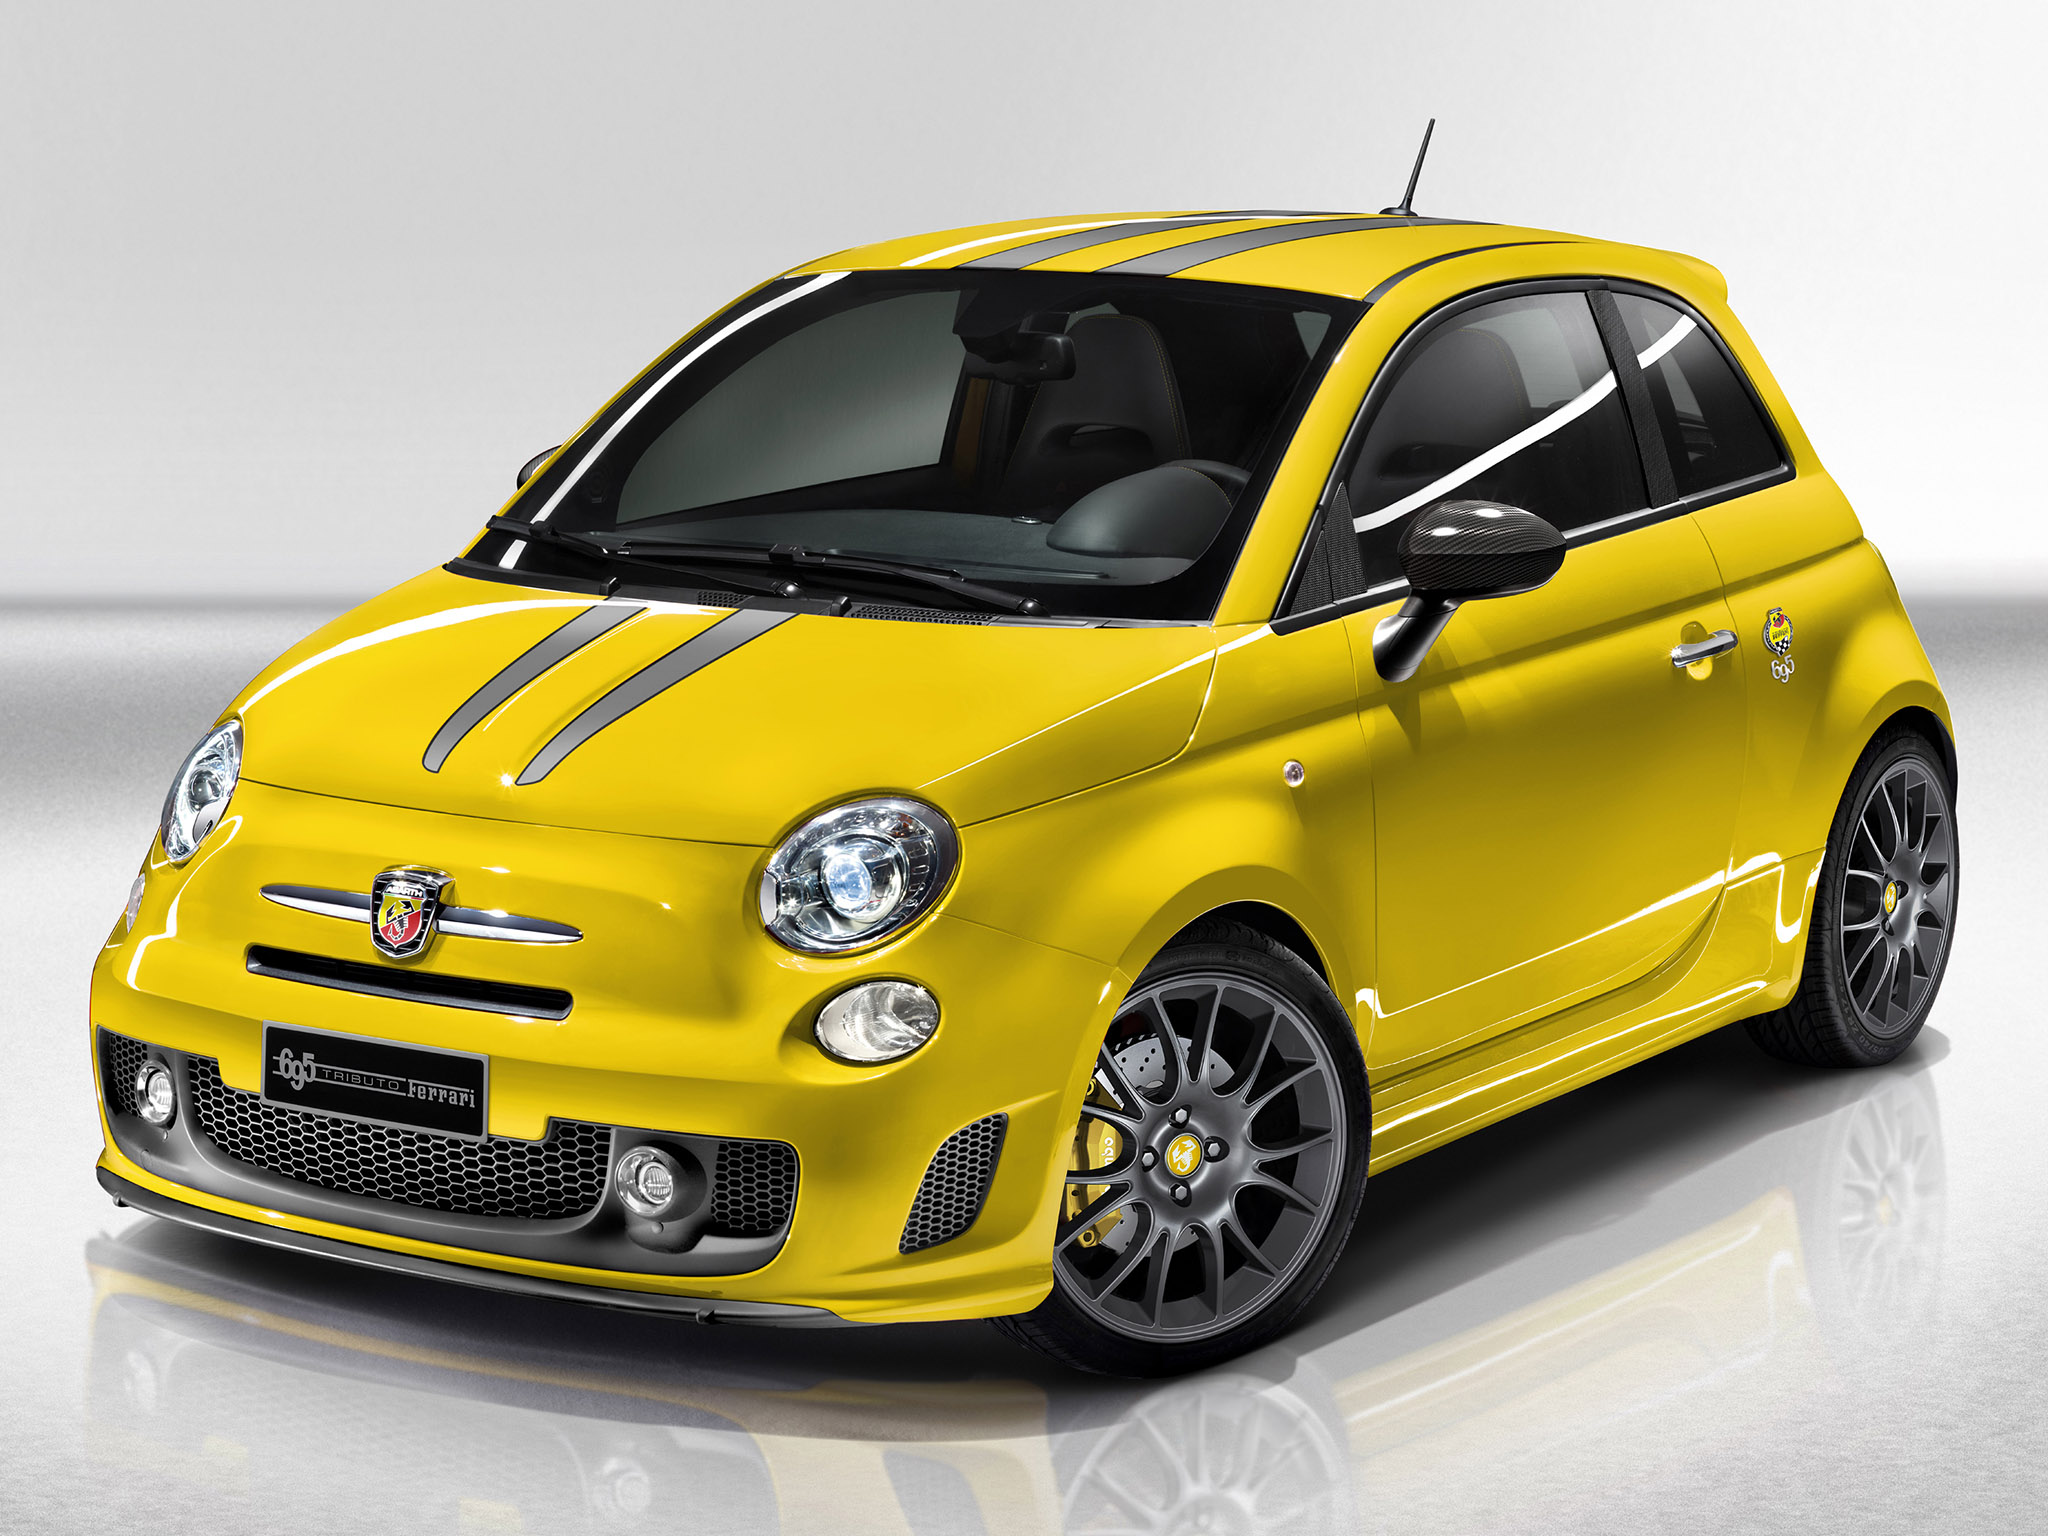 fiat 500 abarth 695 tributo ferrari 2011 fiat 500 abarth 695 tributo ferrari 2011 photo 04 car. Black Bedroom Furniture Sets. Home Design Ideas